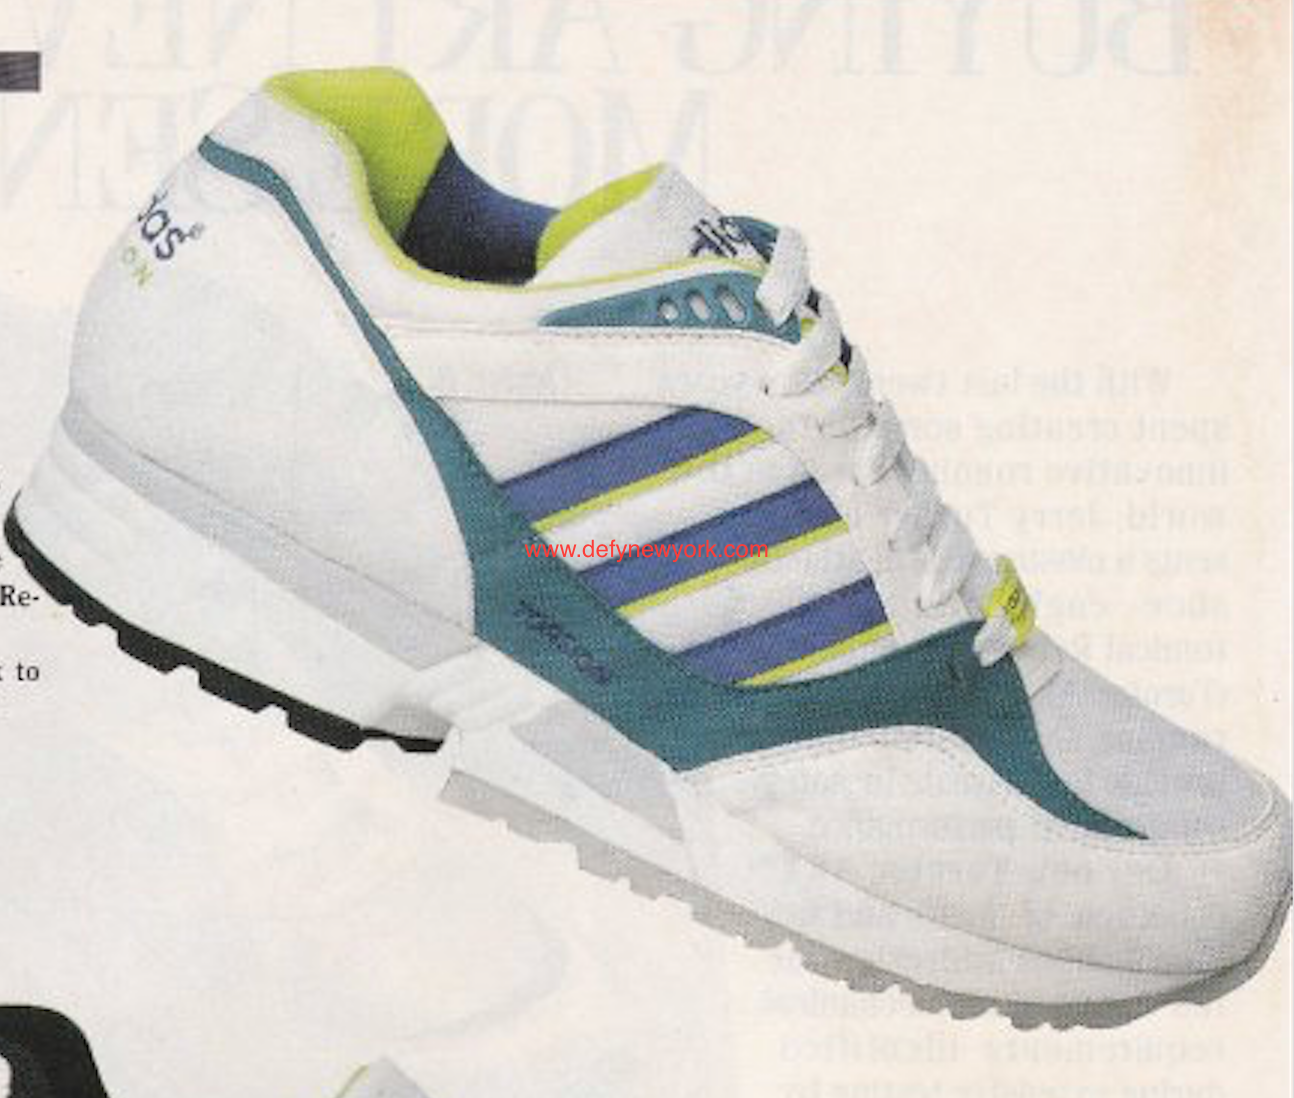 the latest 0b499 77d69 Adidas Torsion Response Running Shoe 1991